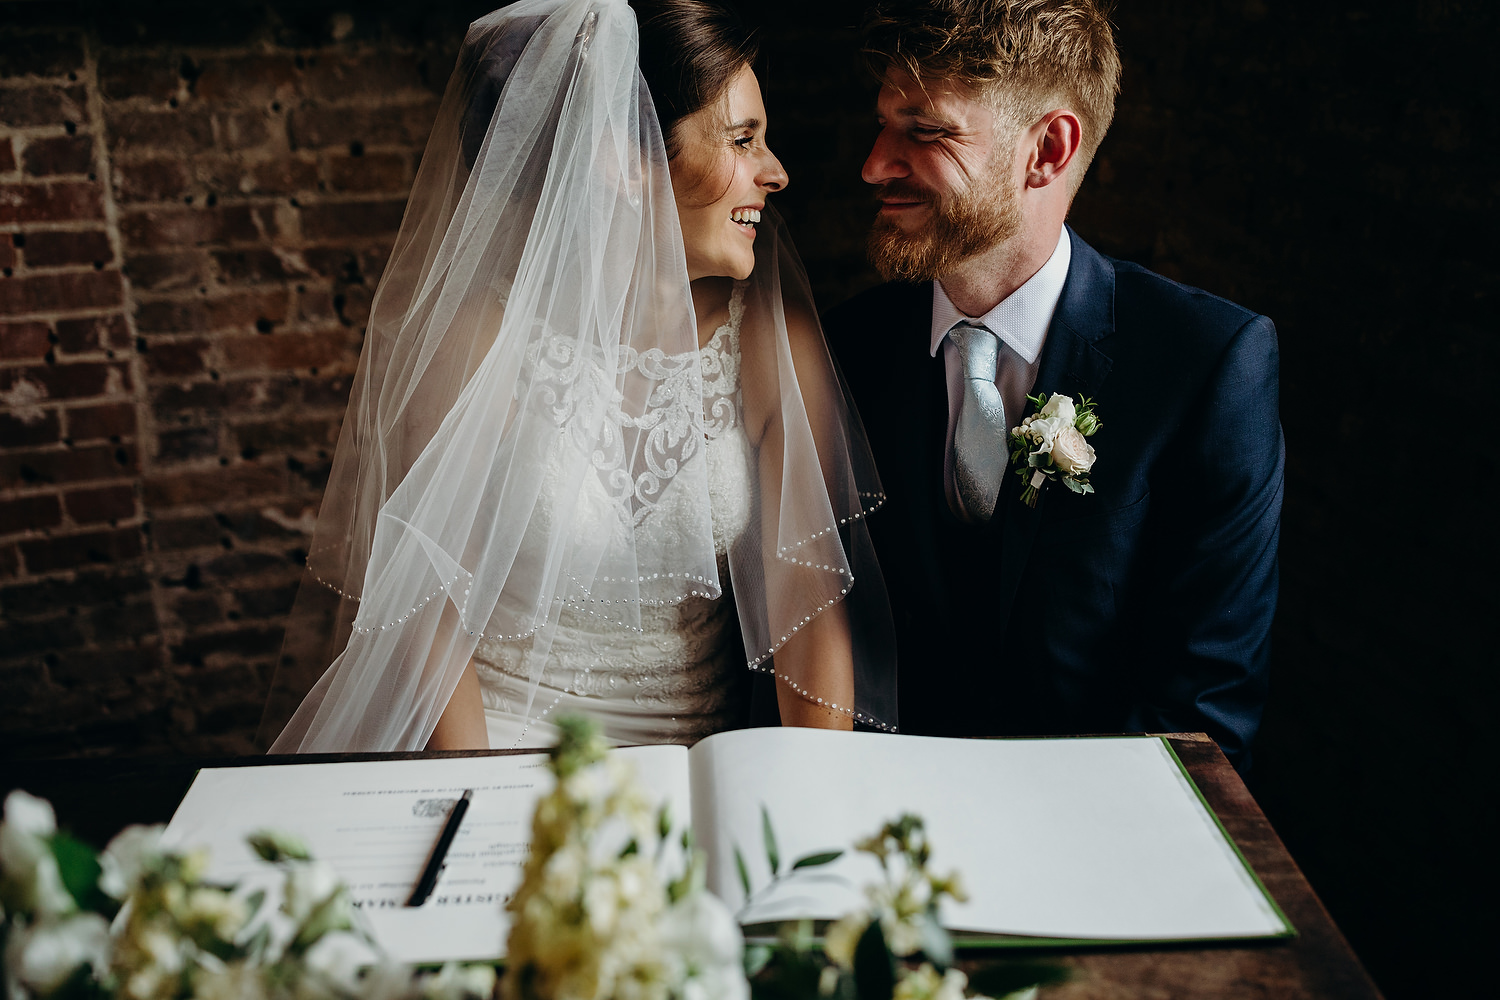 bride and groom smiling after just getting married